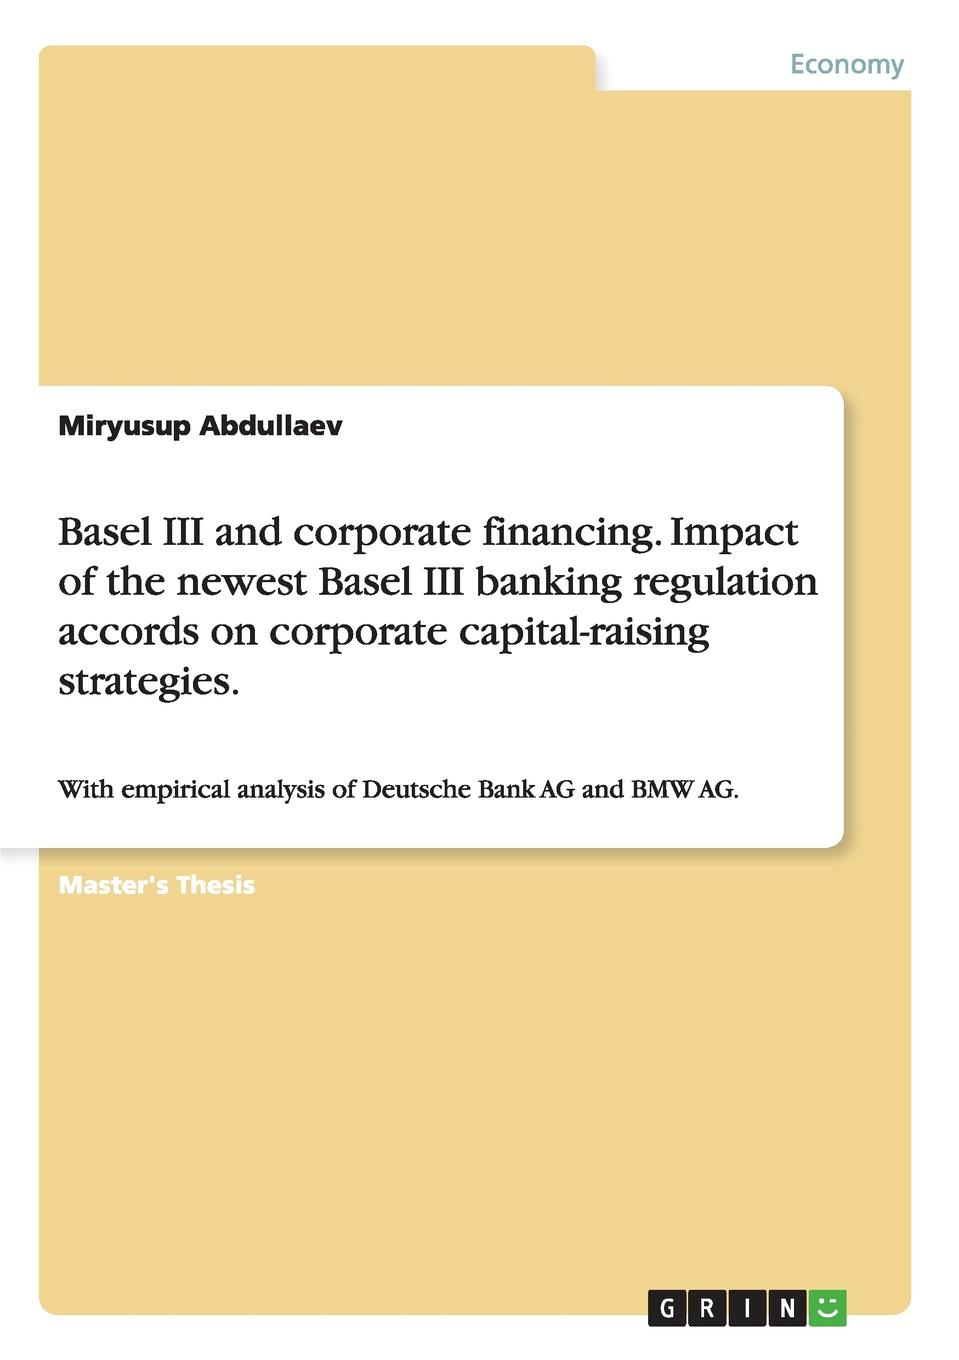 Miryusup Abdullaev Basel III and corporate financing. Impact of the newest Basel III banking regulation accords on corporate capital-raising strategies. juan ramirez handbook of basel iii capital enhancing bank capital in practice